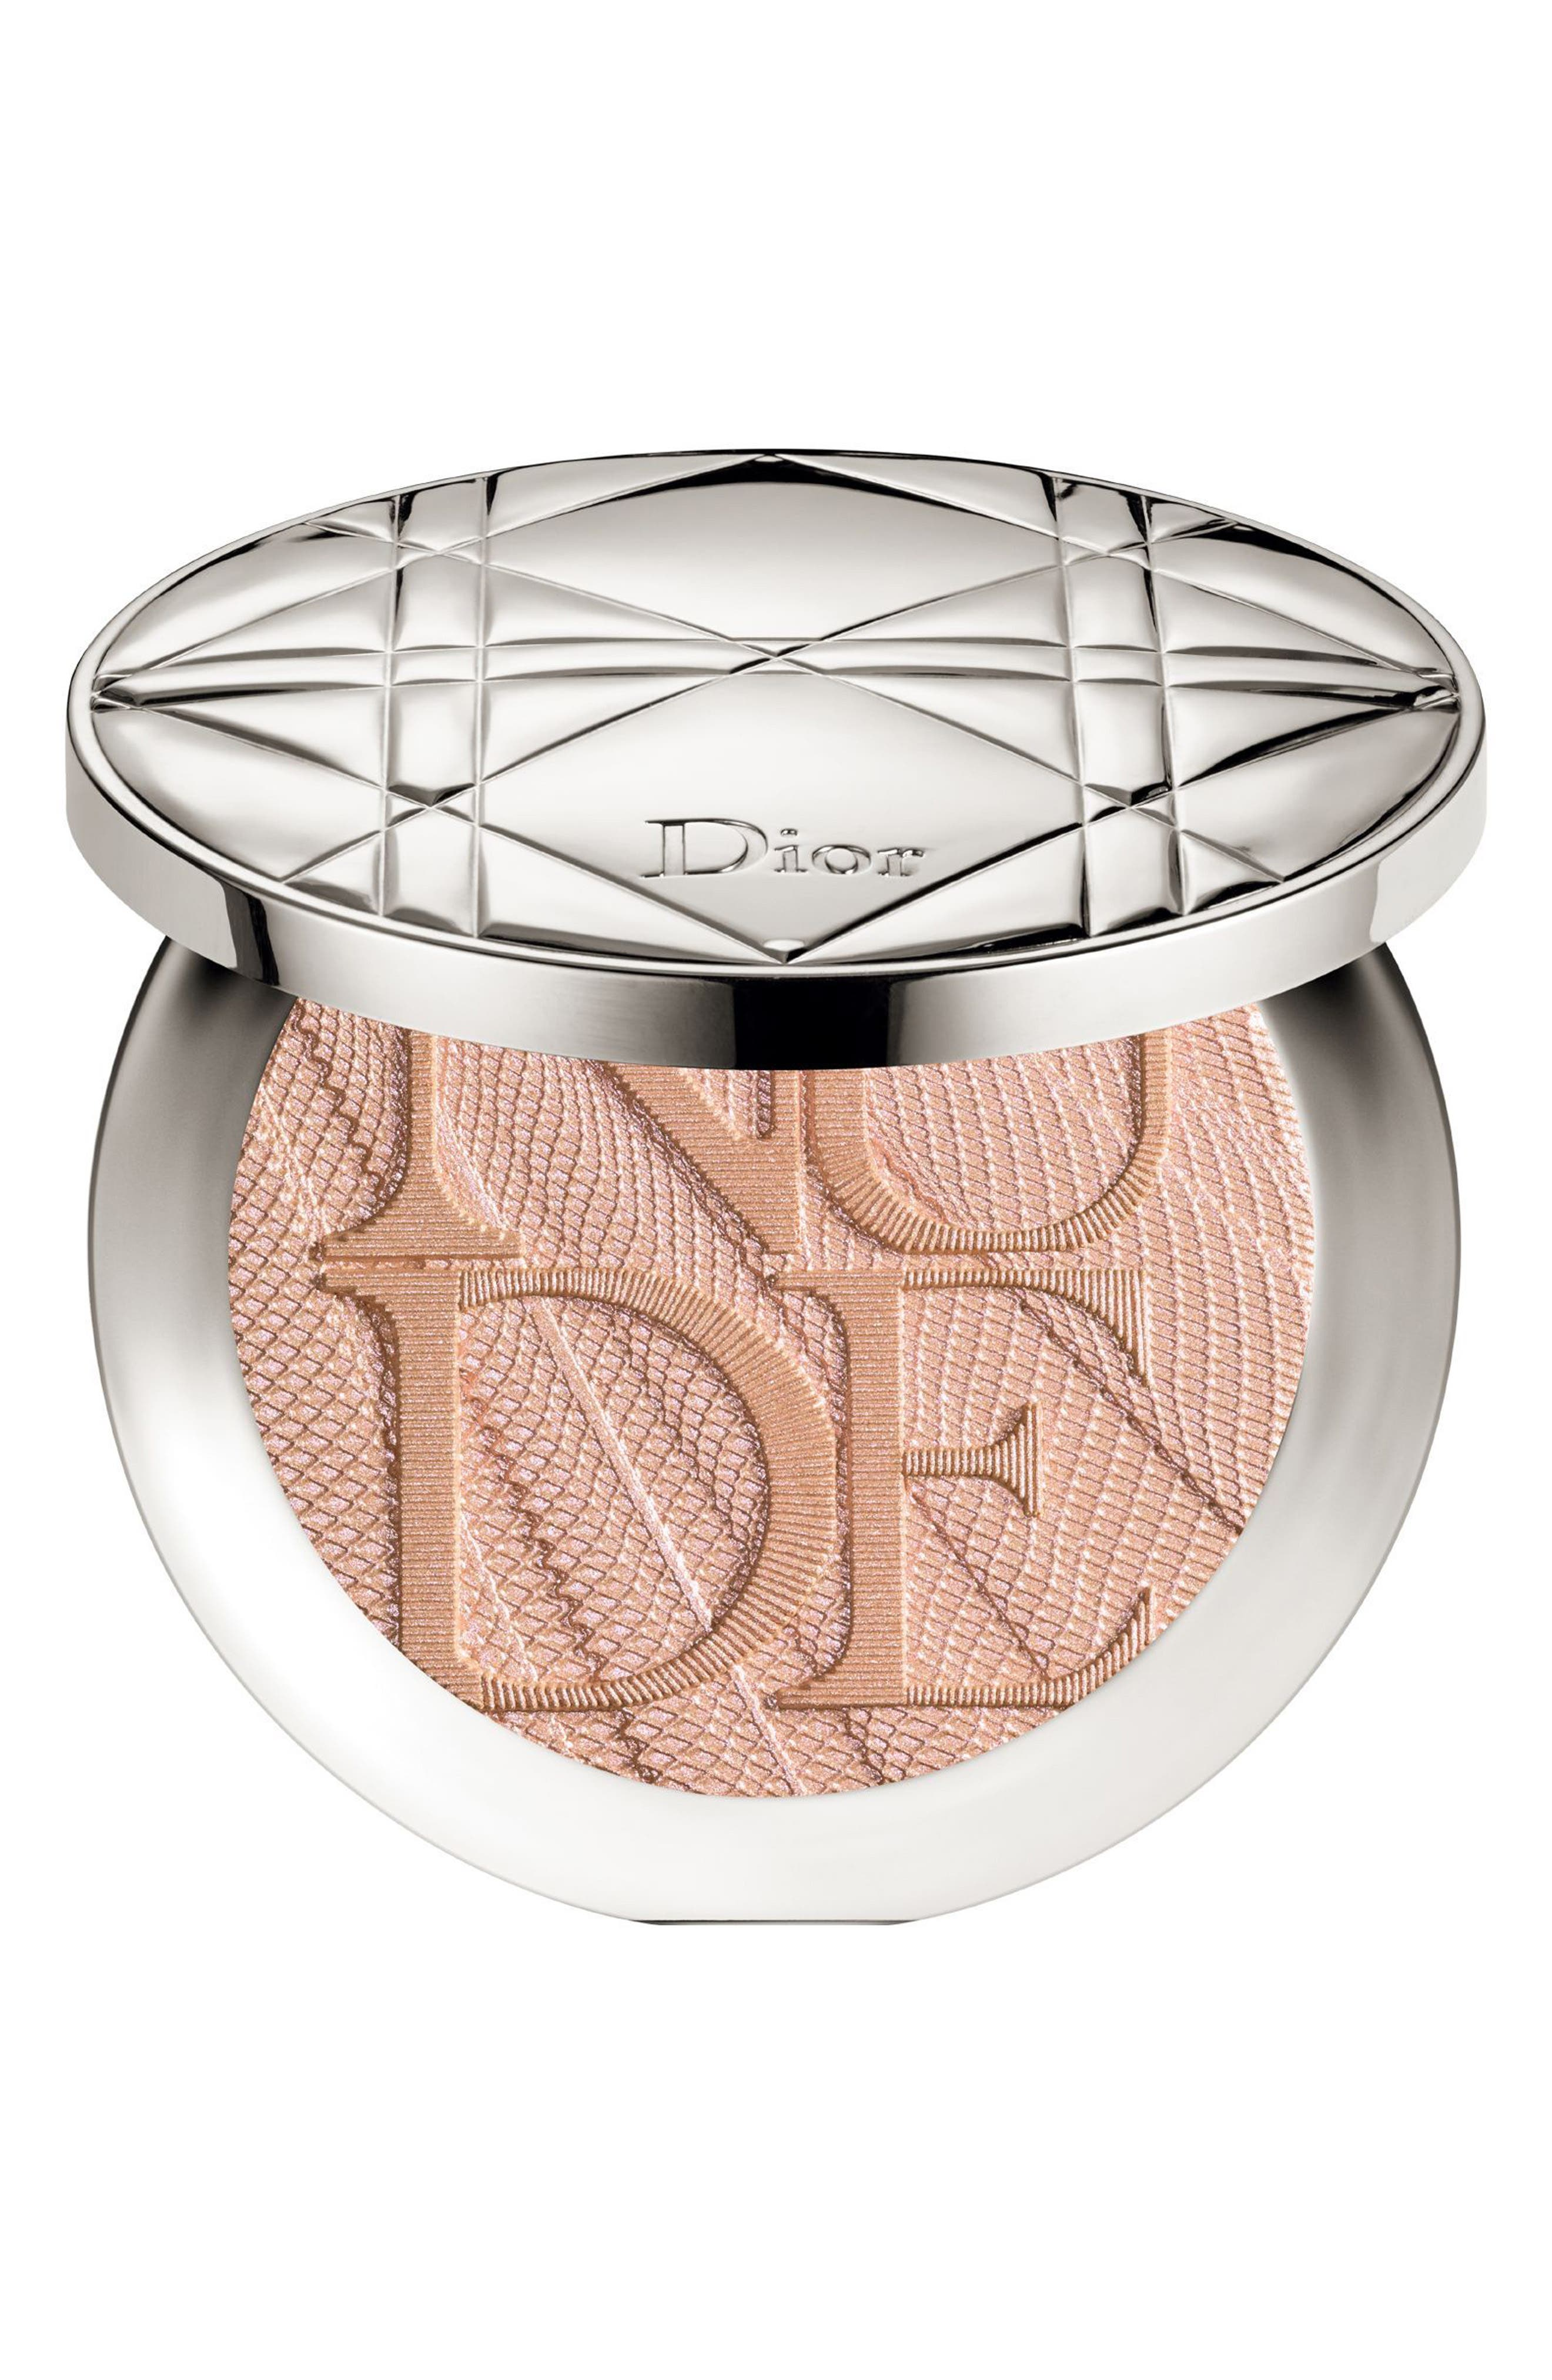 Diorskin Nude Air Luminizer Glow Addict Holographic Sculpting Powder,                             Main thumbnail 1, color,                             002 HOLO GOLD